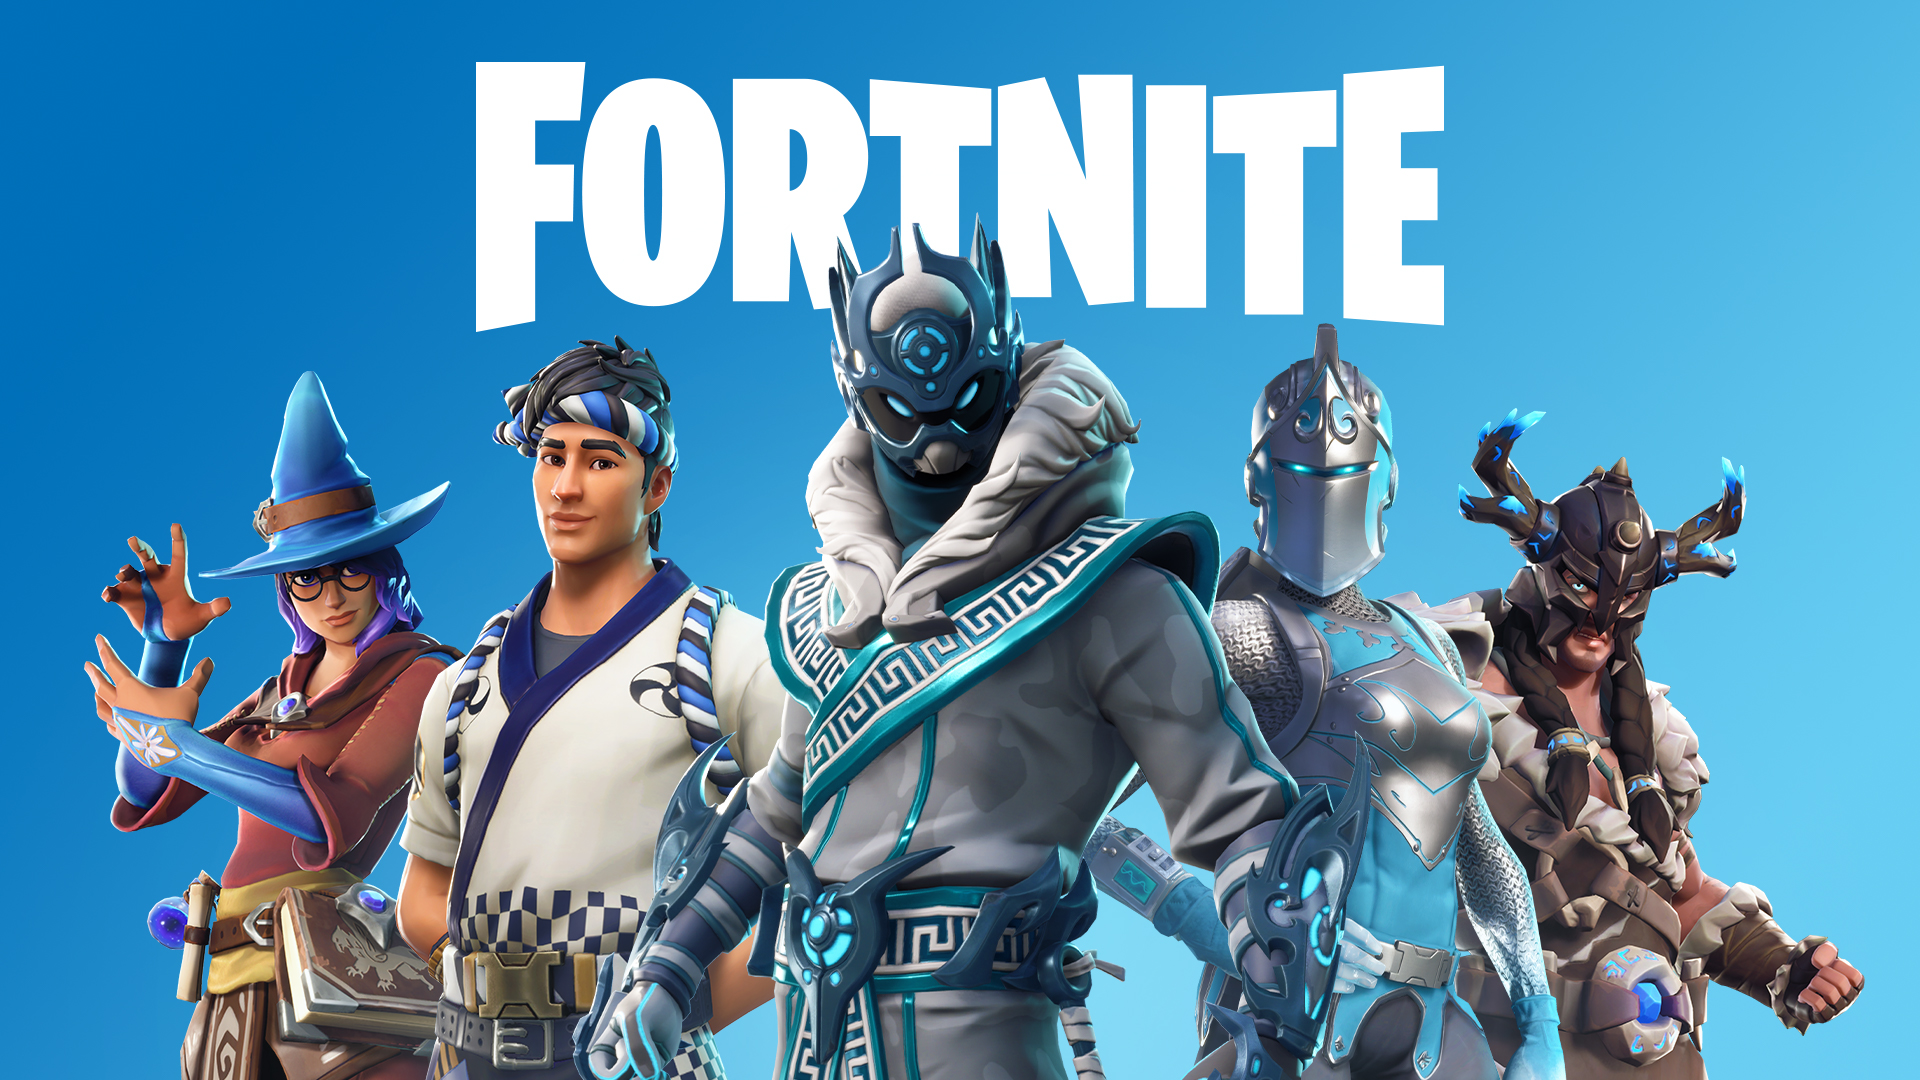 5 Fortnite player characters on blue background